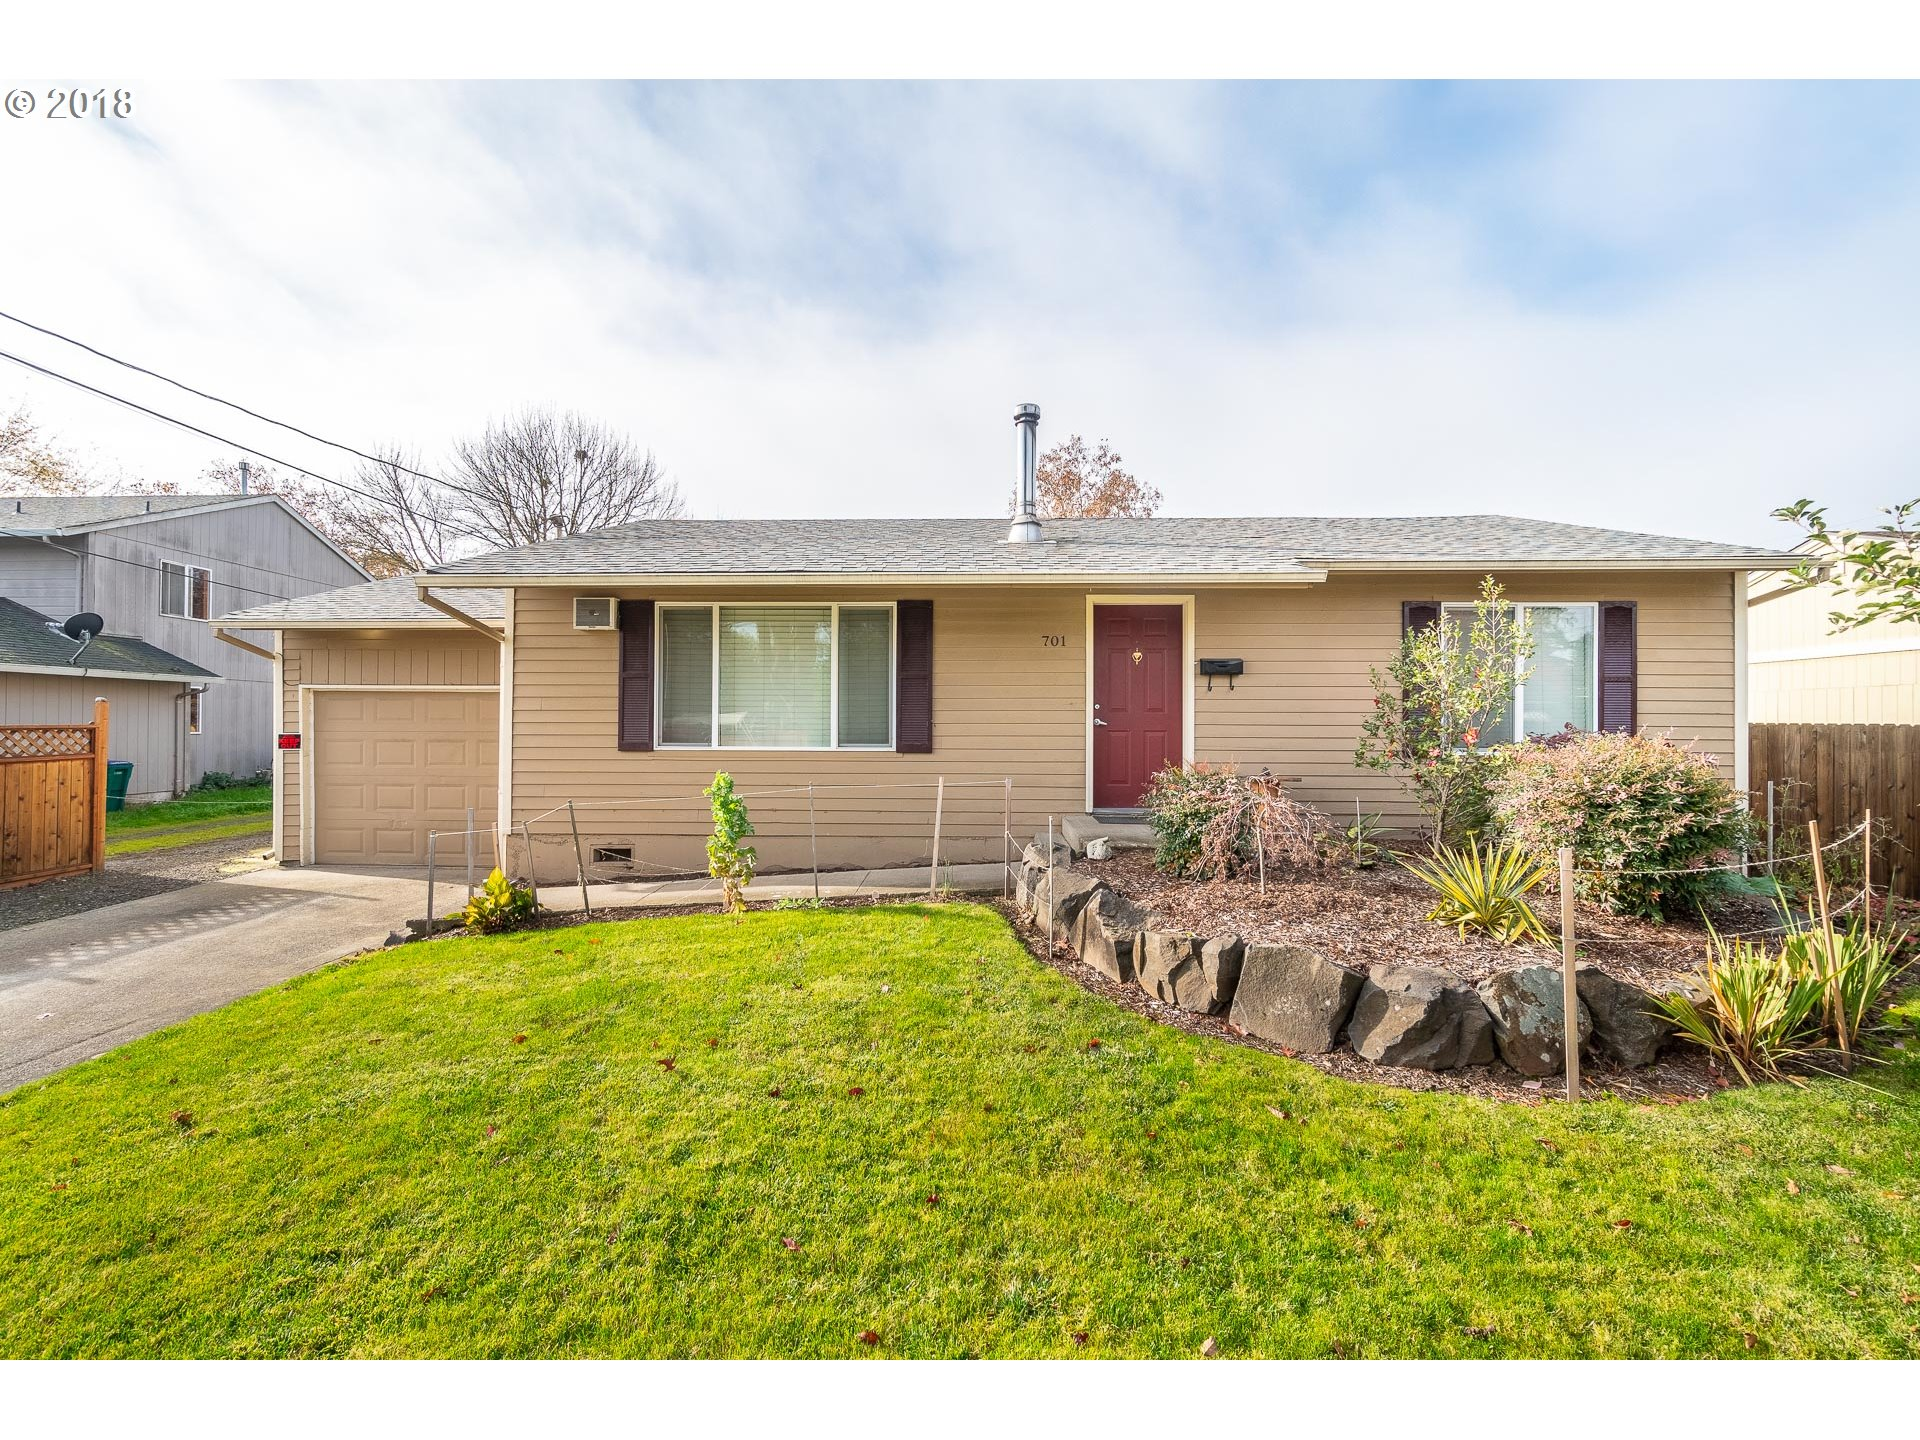 701 S PACIFIC ST Newberg, OR 97132 - MLS #: 18352181